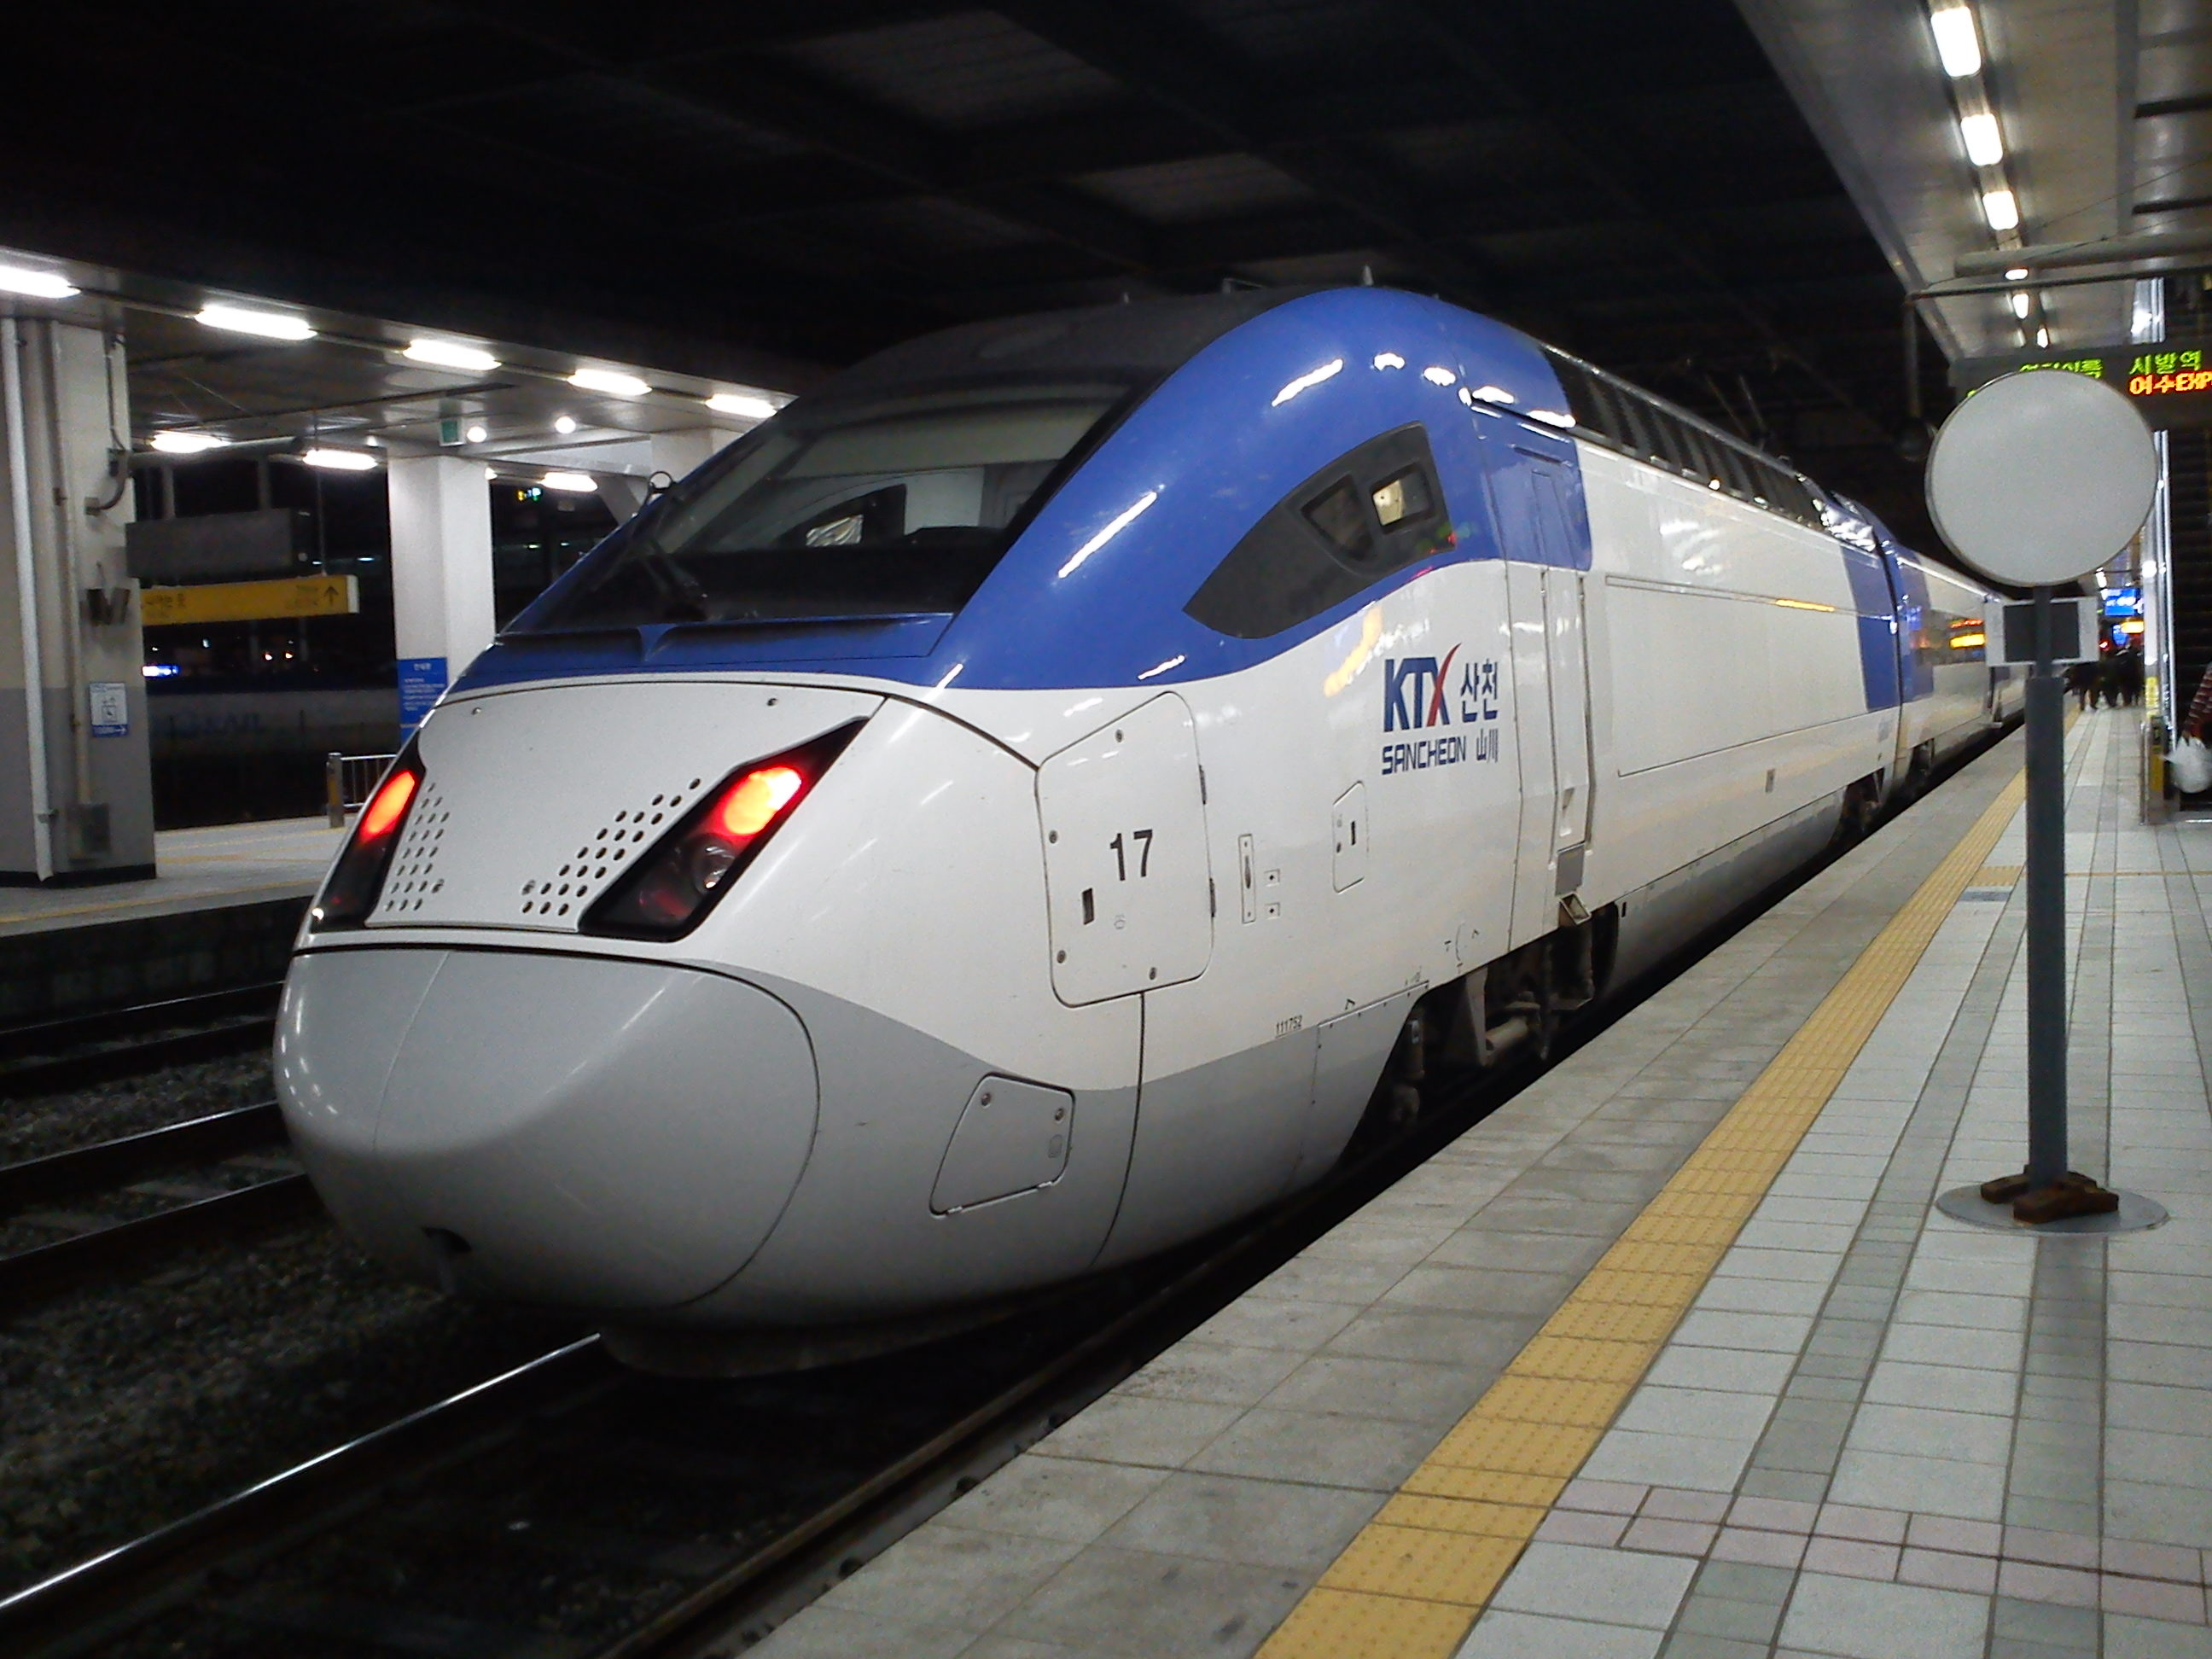 The Korea Train eXpress, or KTX, travels at speeds of up to 305 km/h (190 mph). (Photo by Mx kouhosei via Wikimedia Commons)